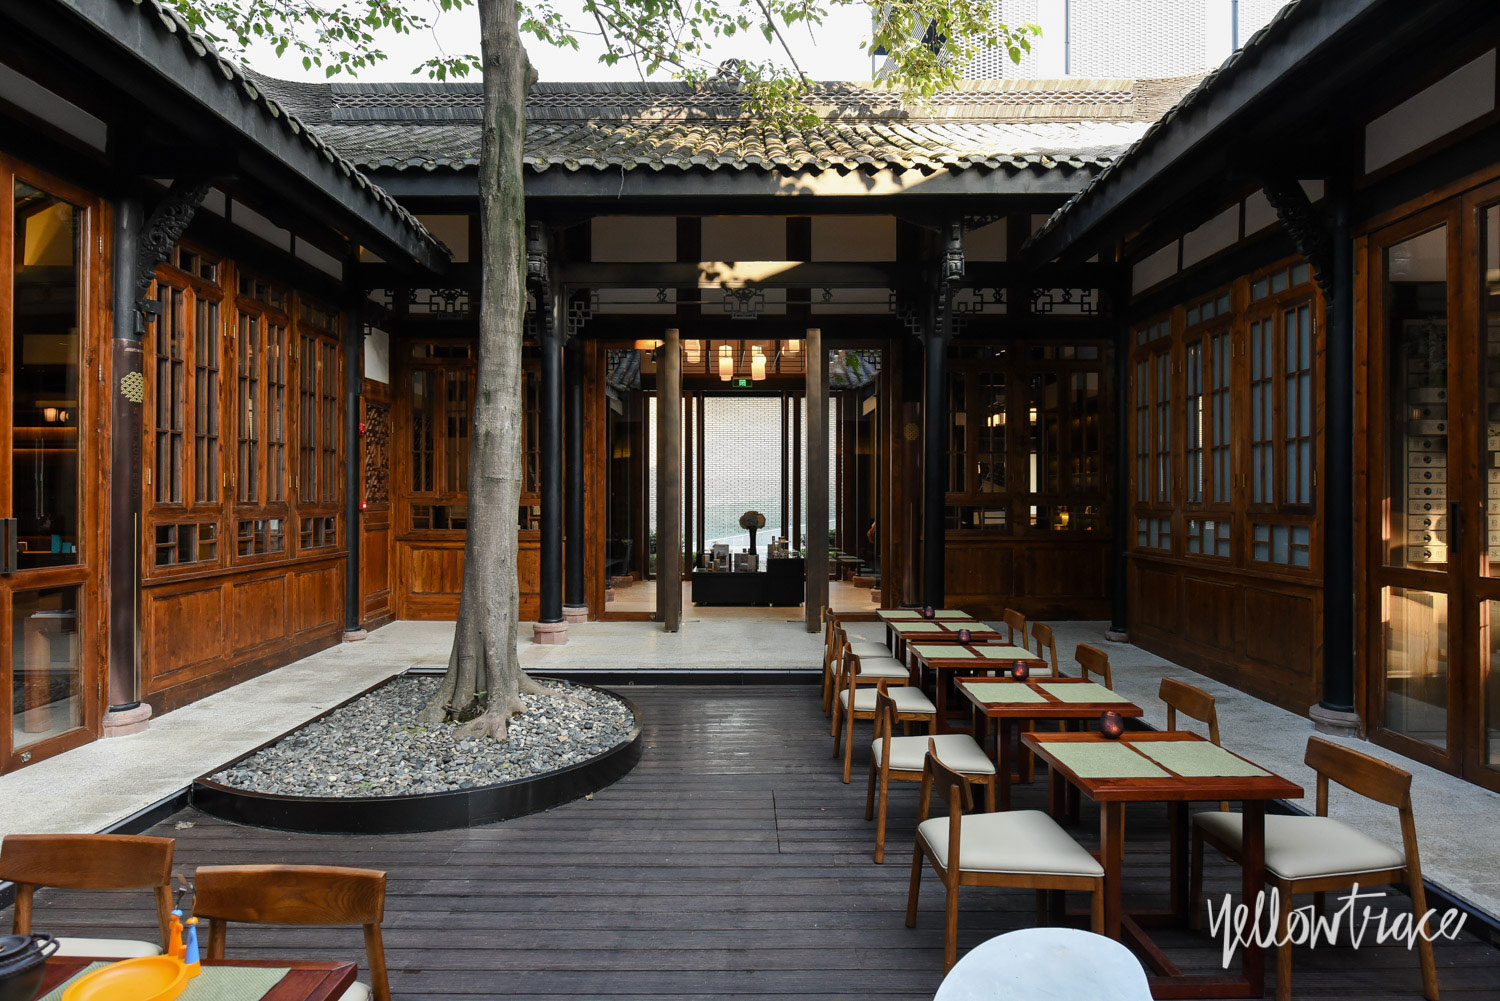 YellowtraceTravels // The Temple House Chengdu, China. on chinese art design, chinese bedroom design, chinese greenhouse design, tea logo design, food house design, chinese grill design, chinese garden design, ginger house design, chinese cave houses, chinese pagoda design, tea shop design, chinese house drawing, chinese contemporary design, chinese gazebo design, cooking house design, chinese style interior design, chinese wrought iron design, chinese asian design, chinese home design, chinese moon gate design,